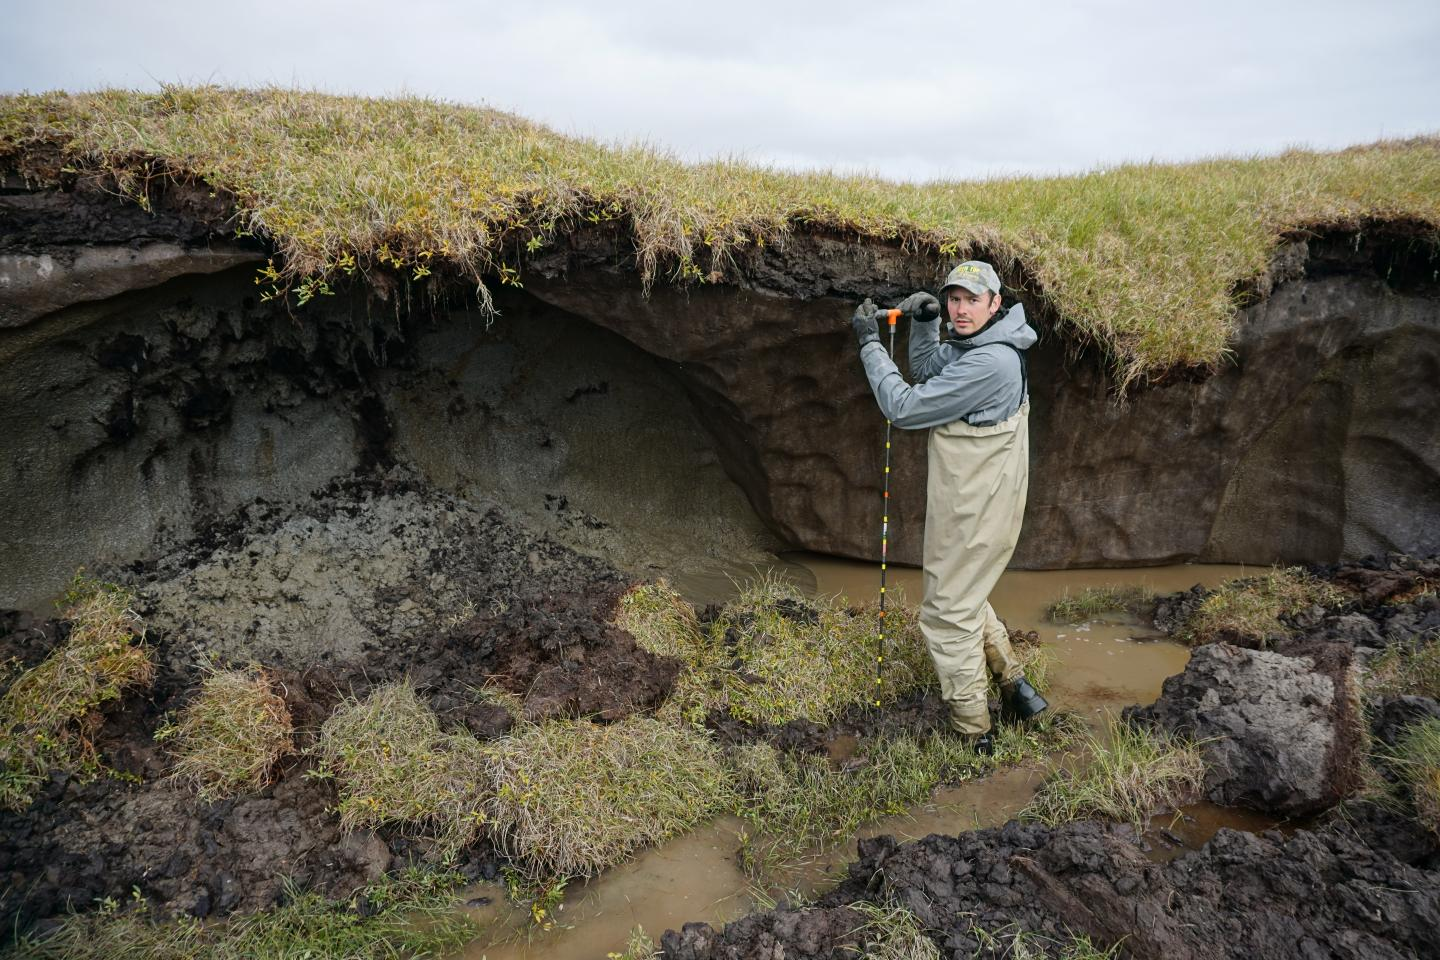 Finding Permafrost